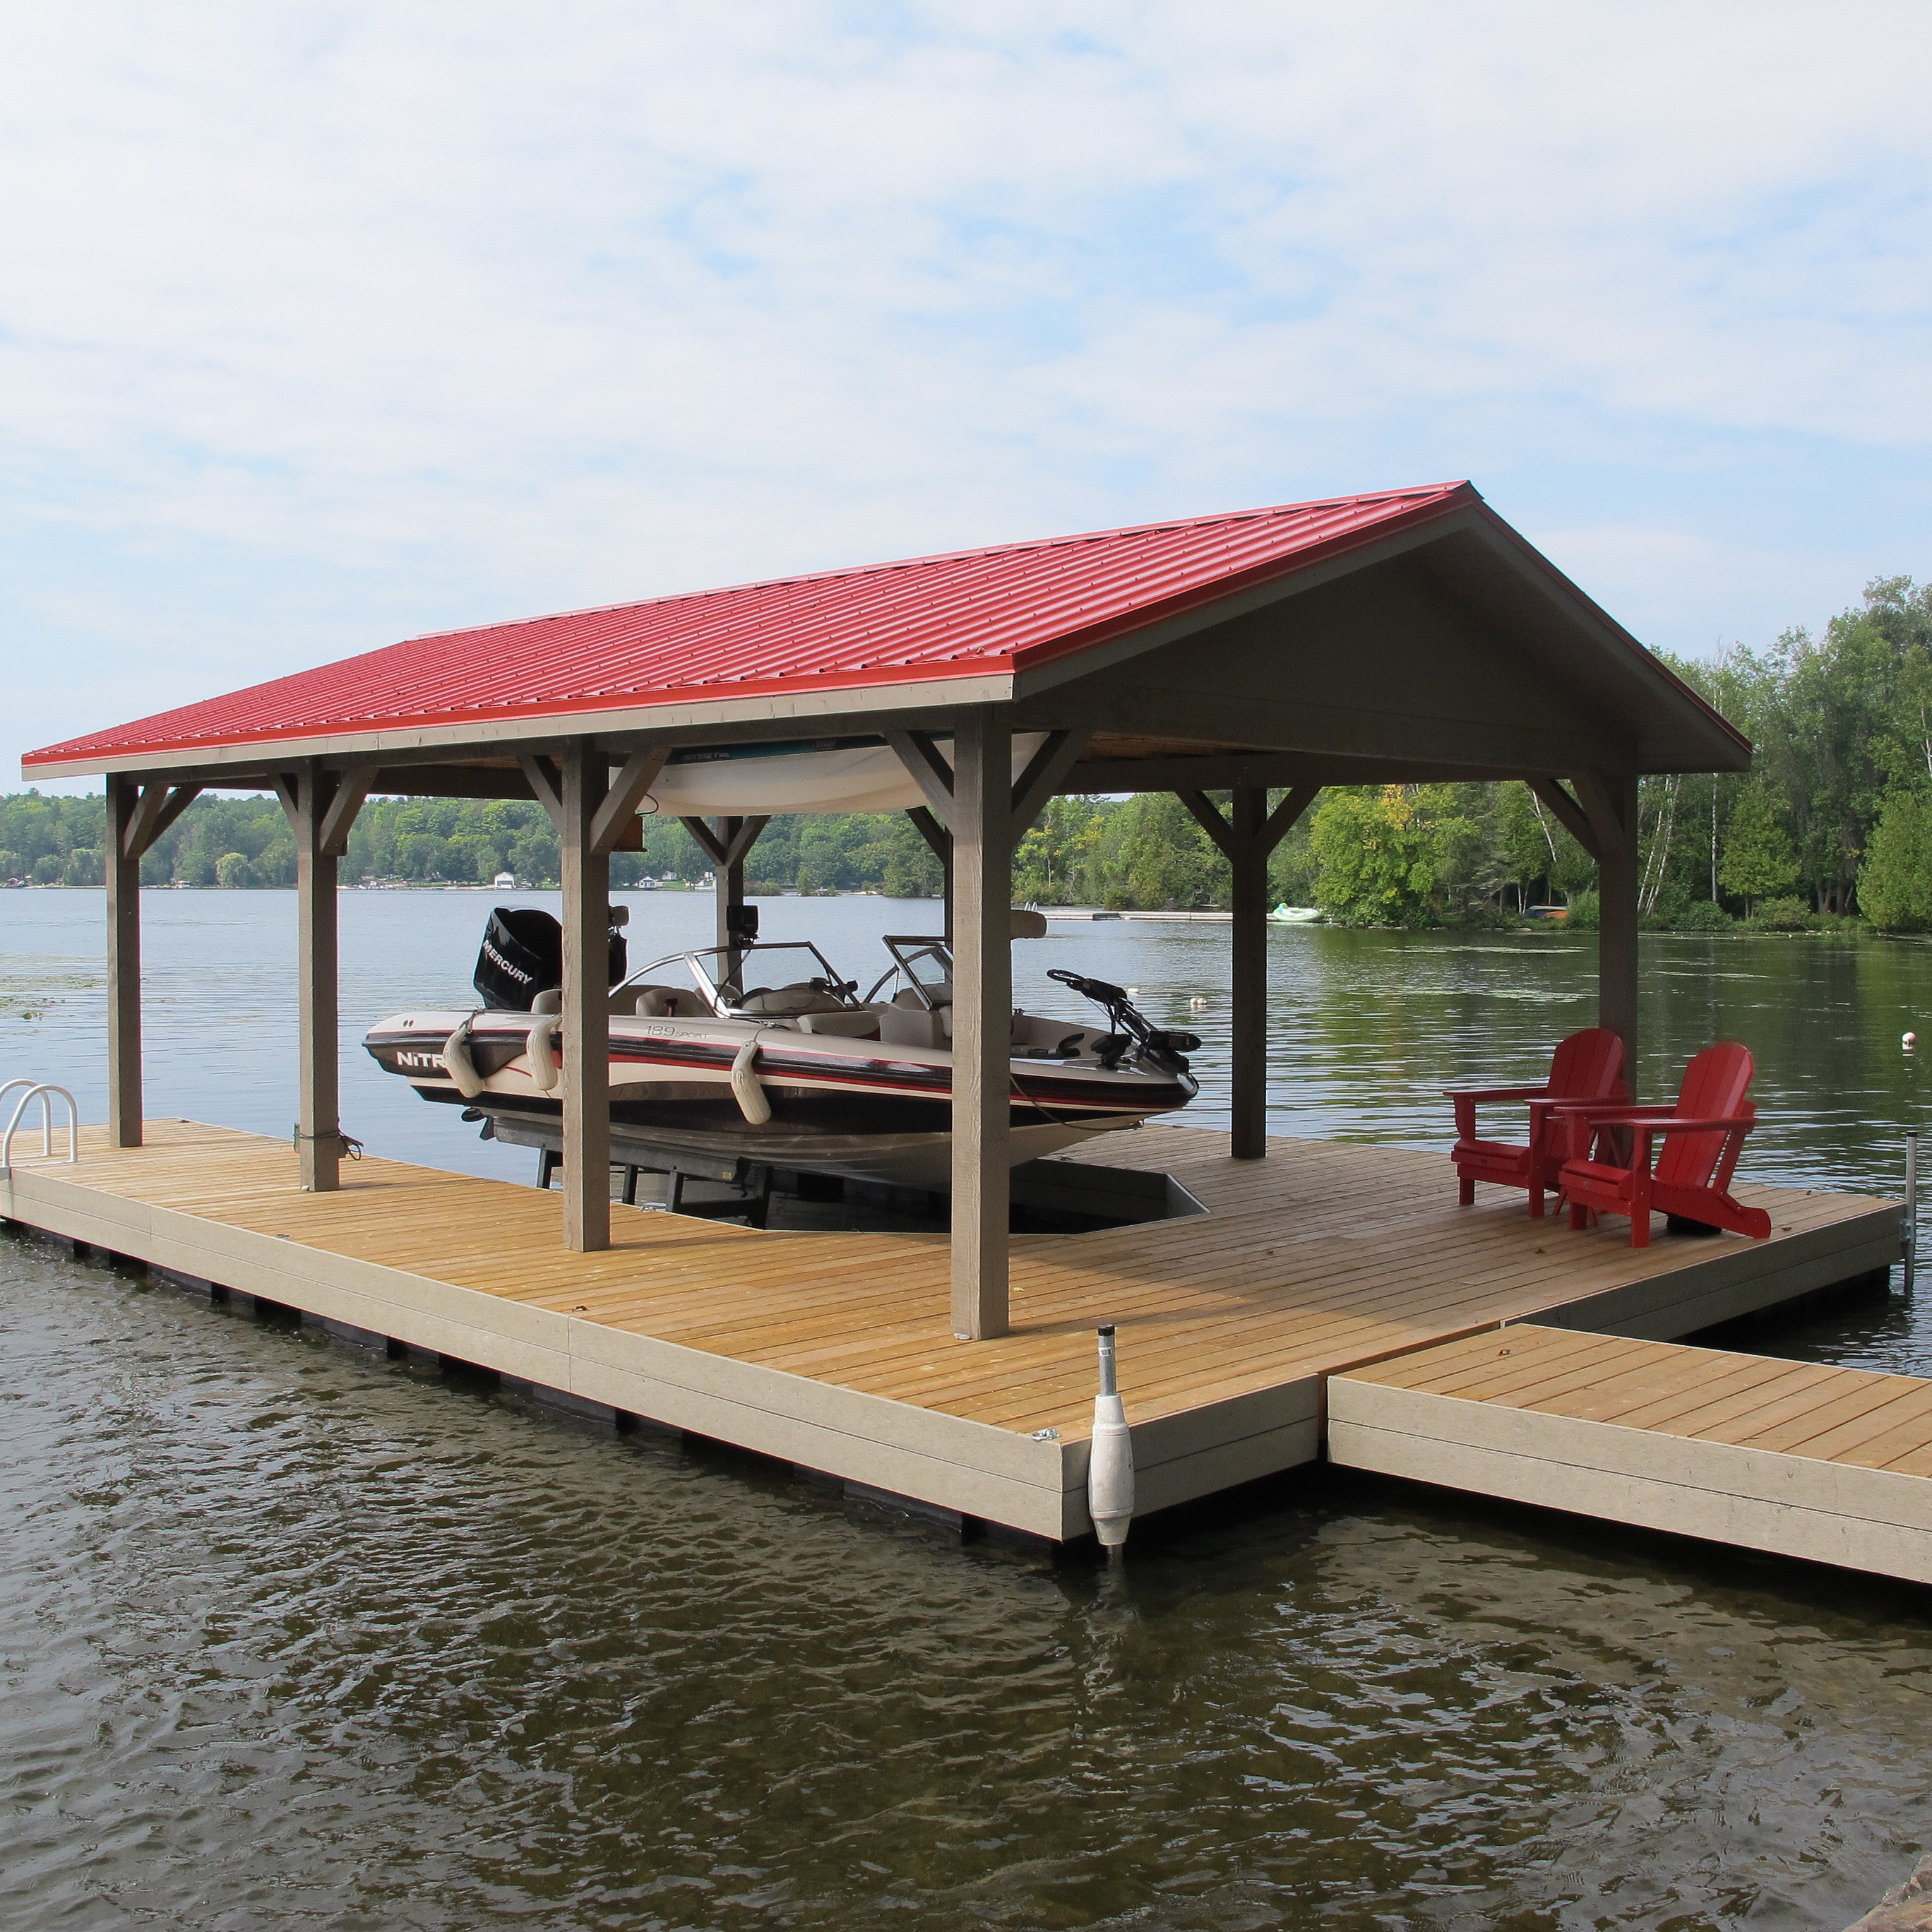 Floathouse floating boathouse | Floating boathouse, Floathouse